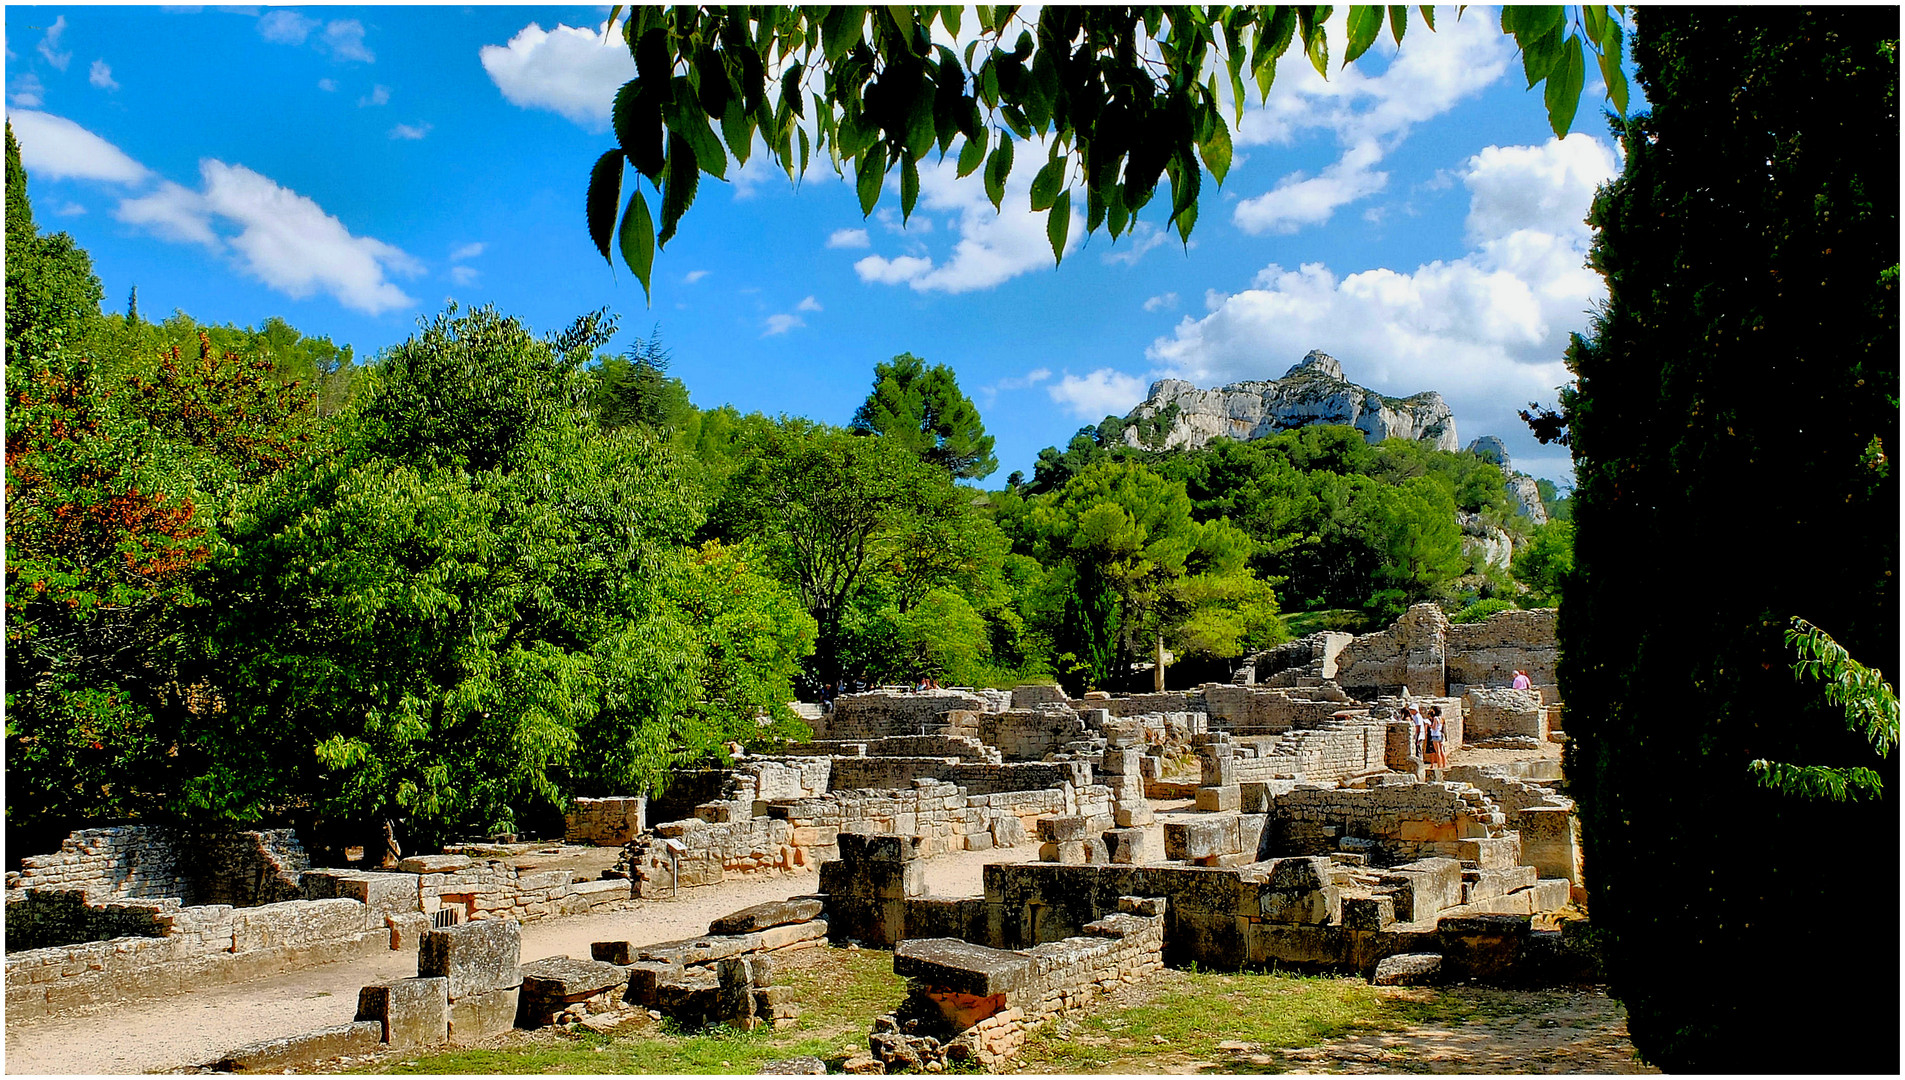 Glanum l'antique